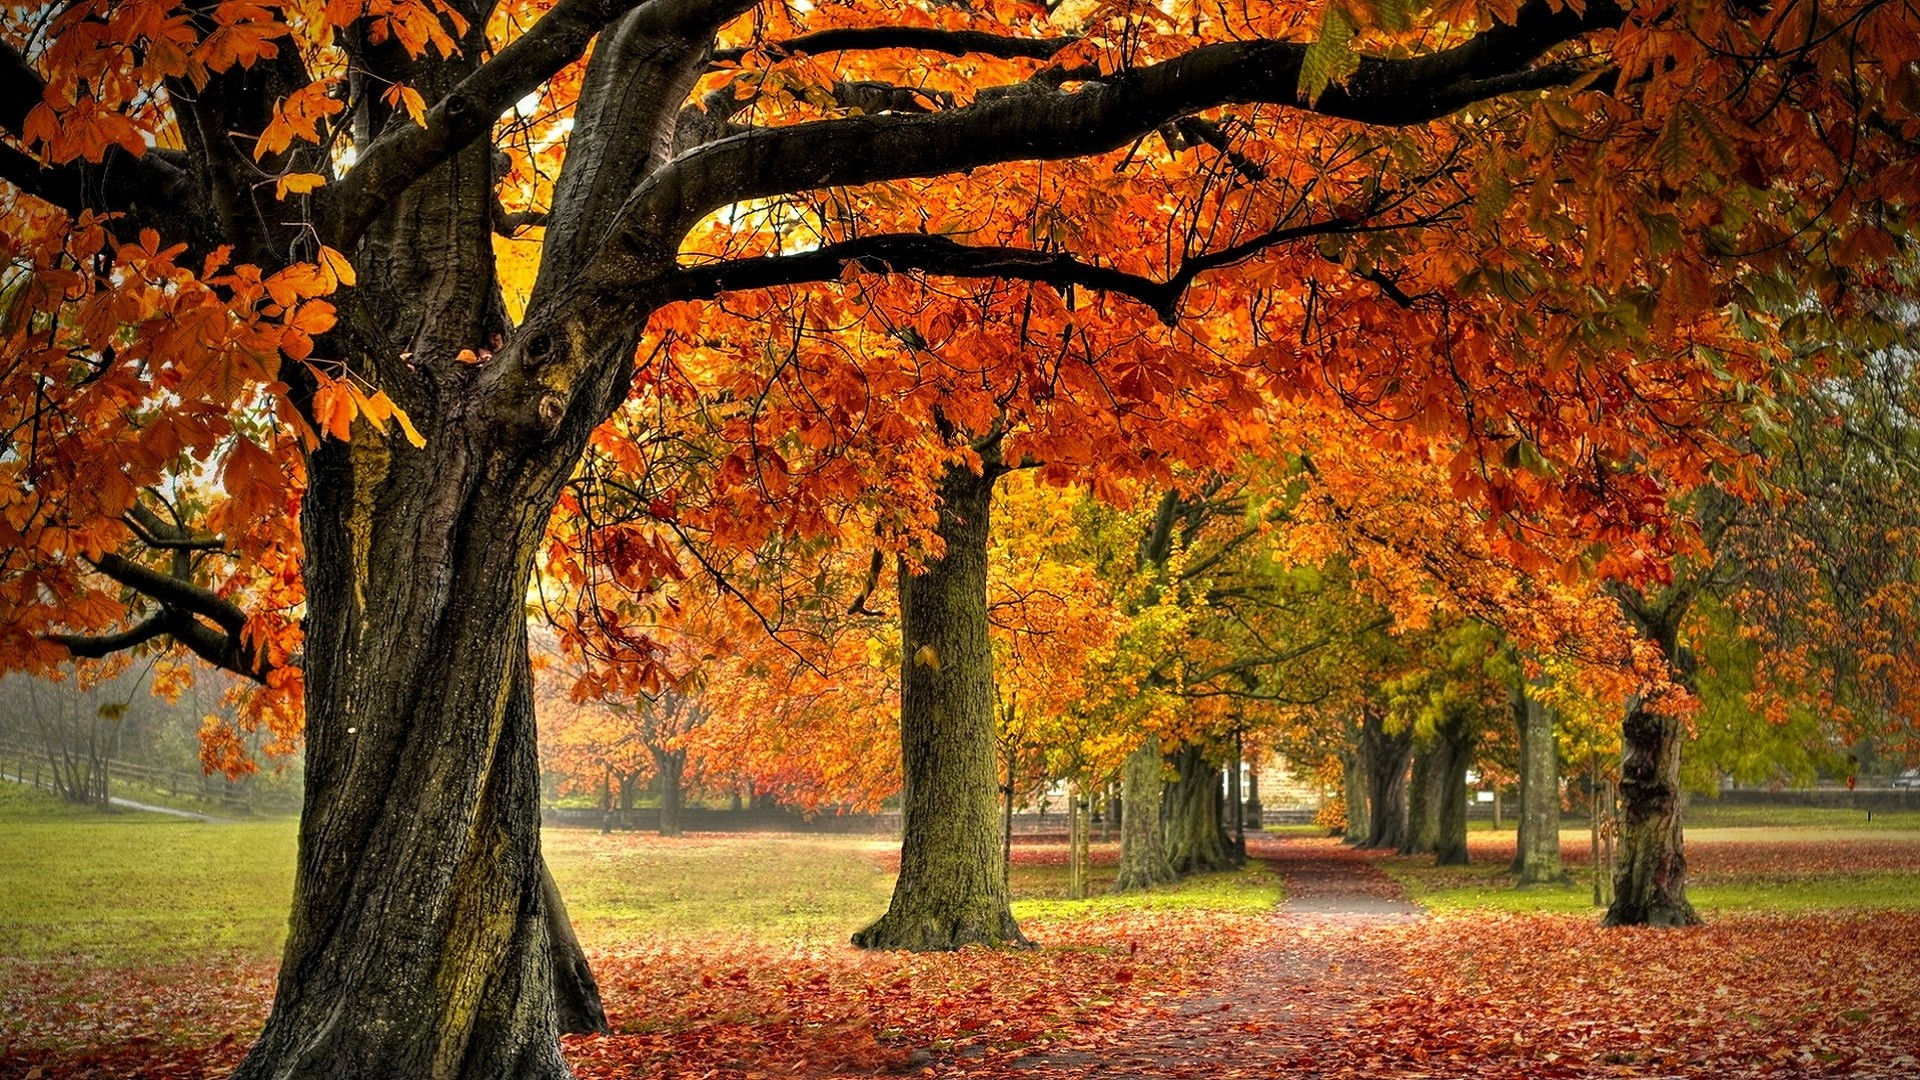 landscape autumn hd wallpaper - photo #42